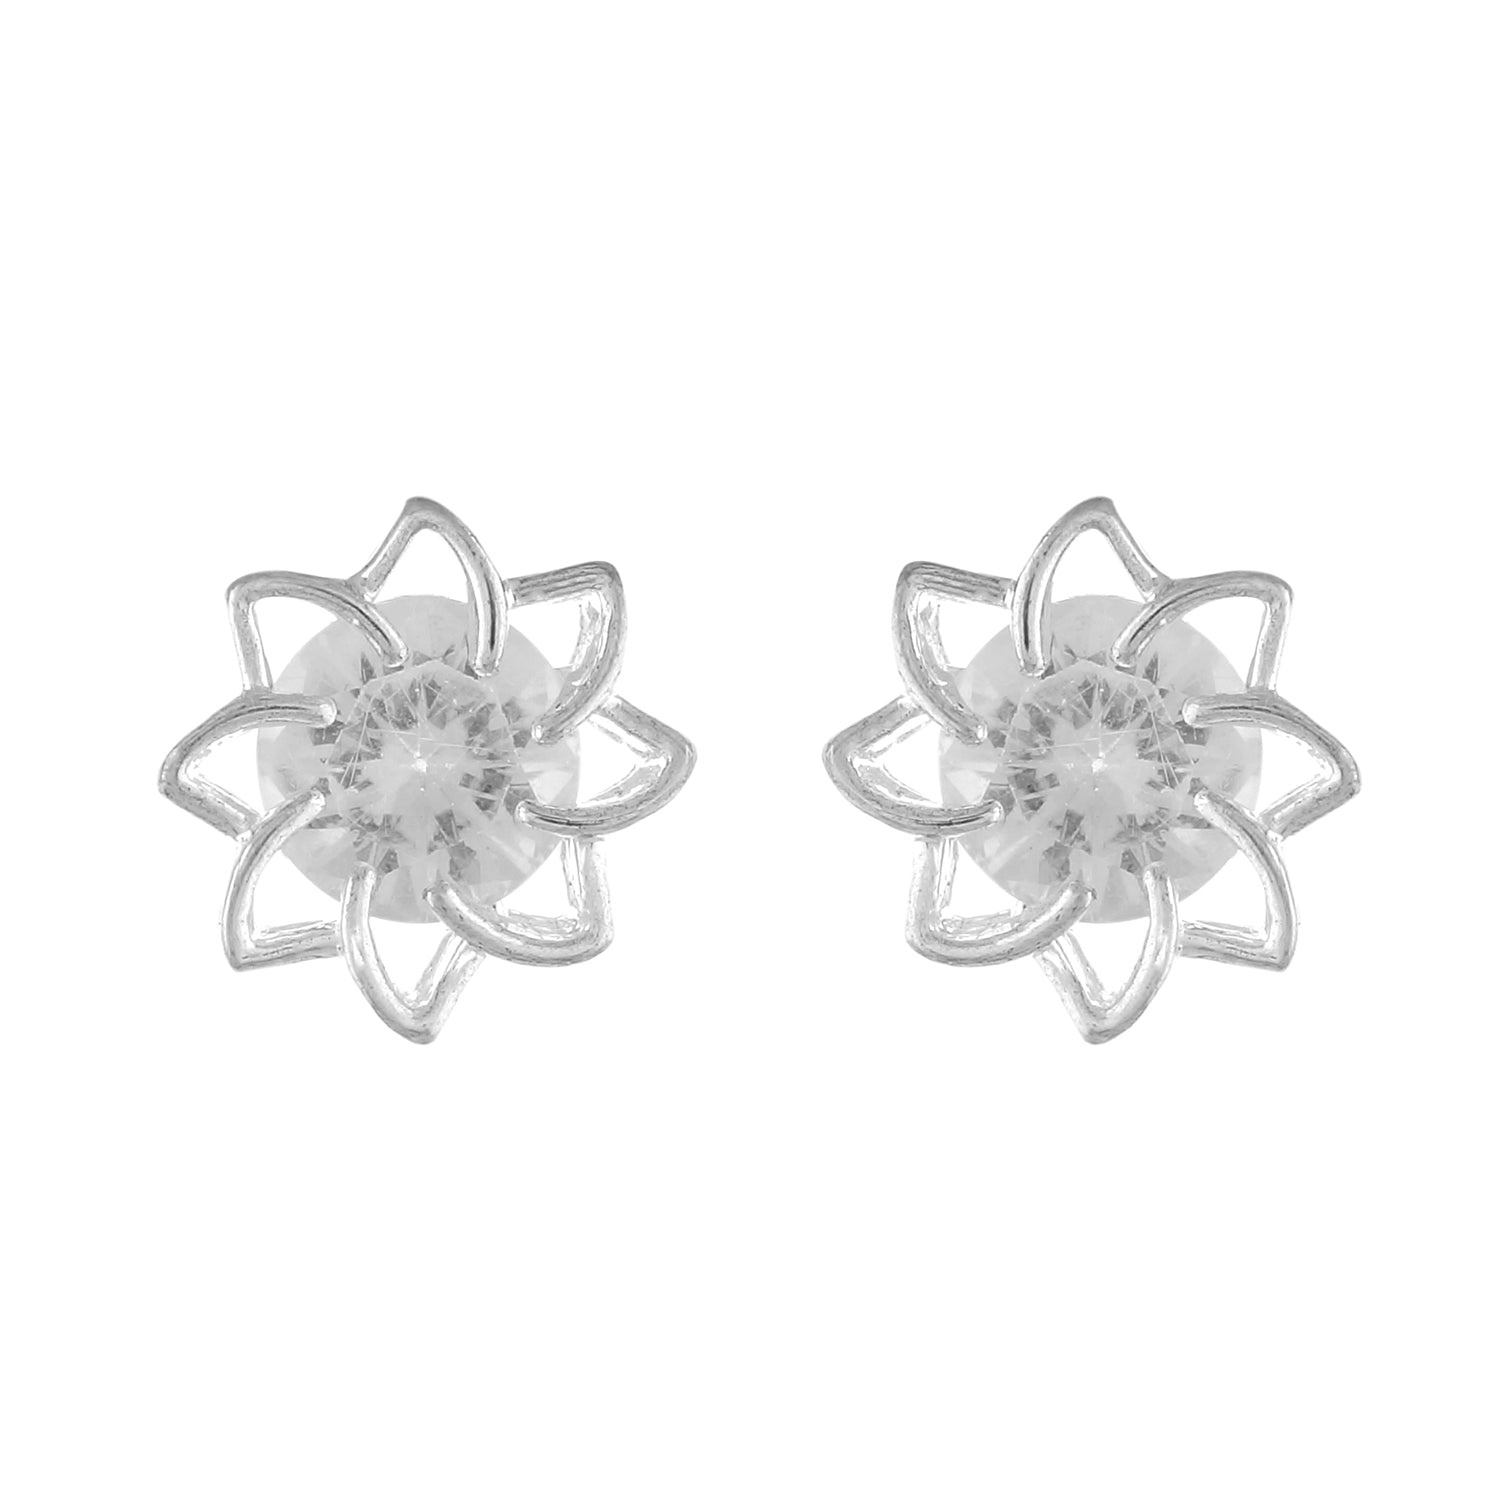 White colour Floral Design  Stud Earrings for Girls and Women